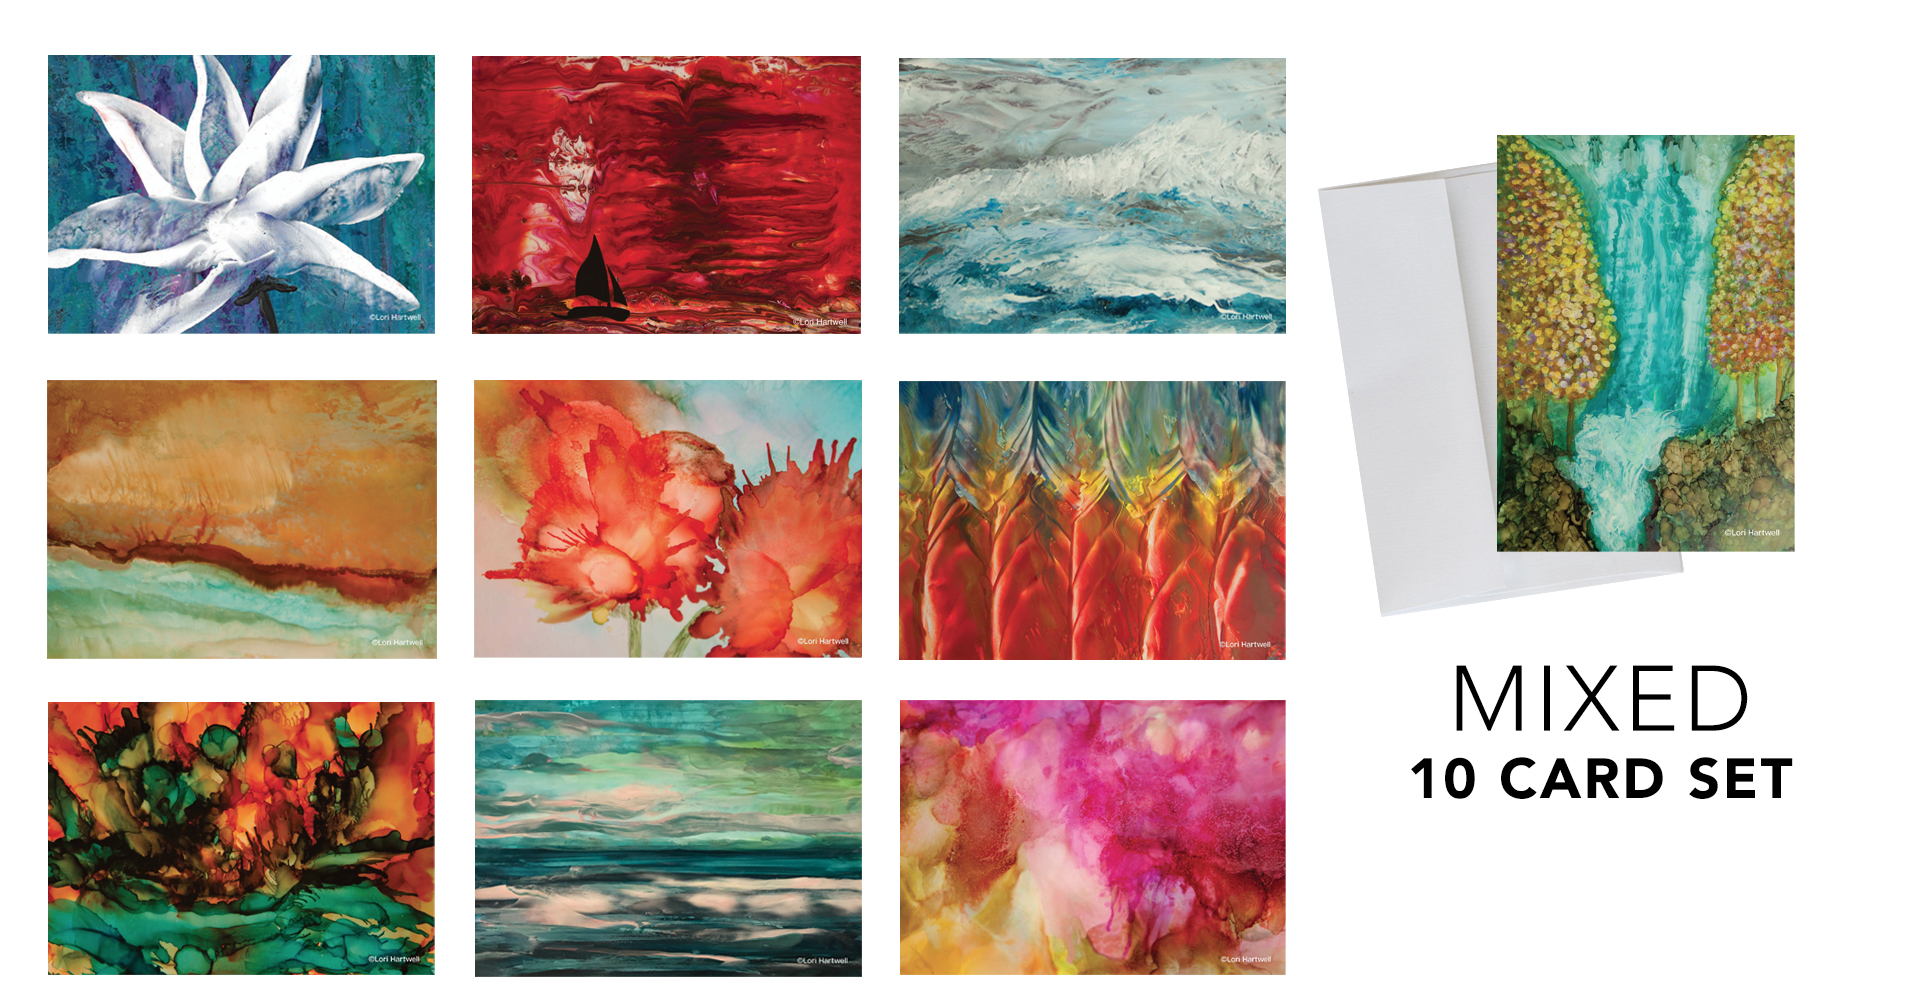 Fine Art Notecards - MIXED - 10 CARD SET